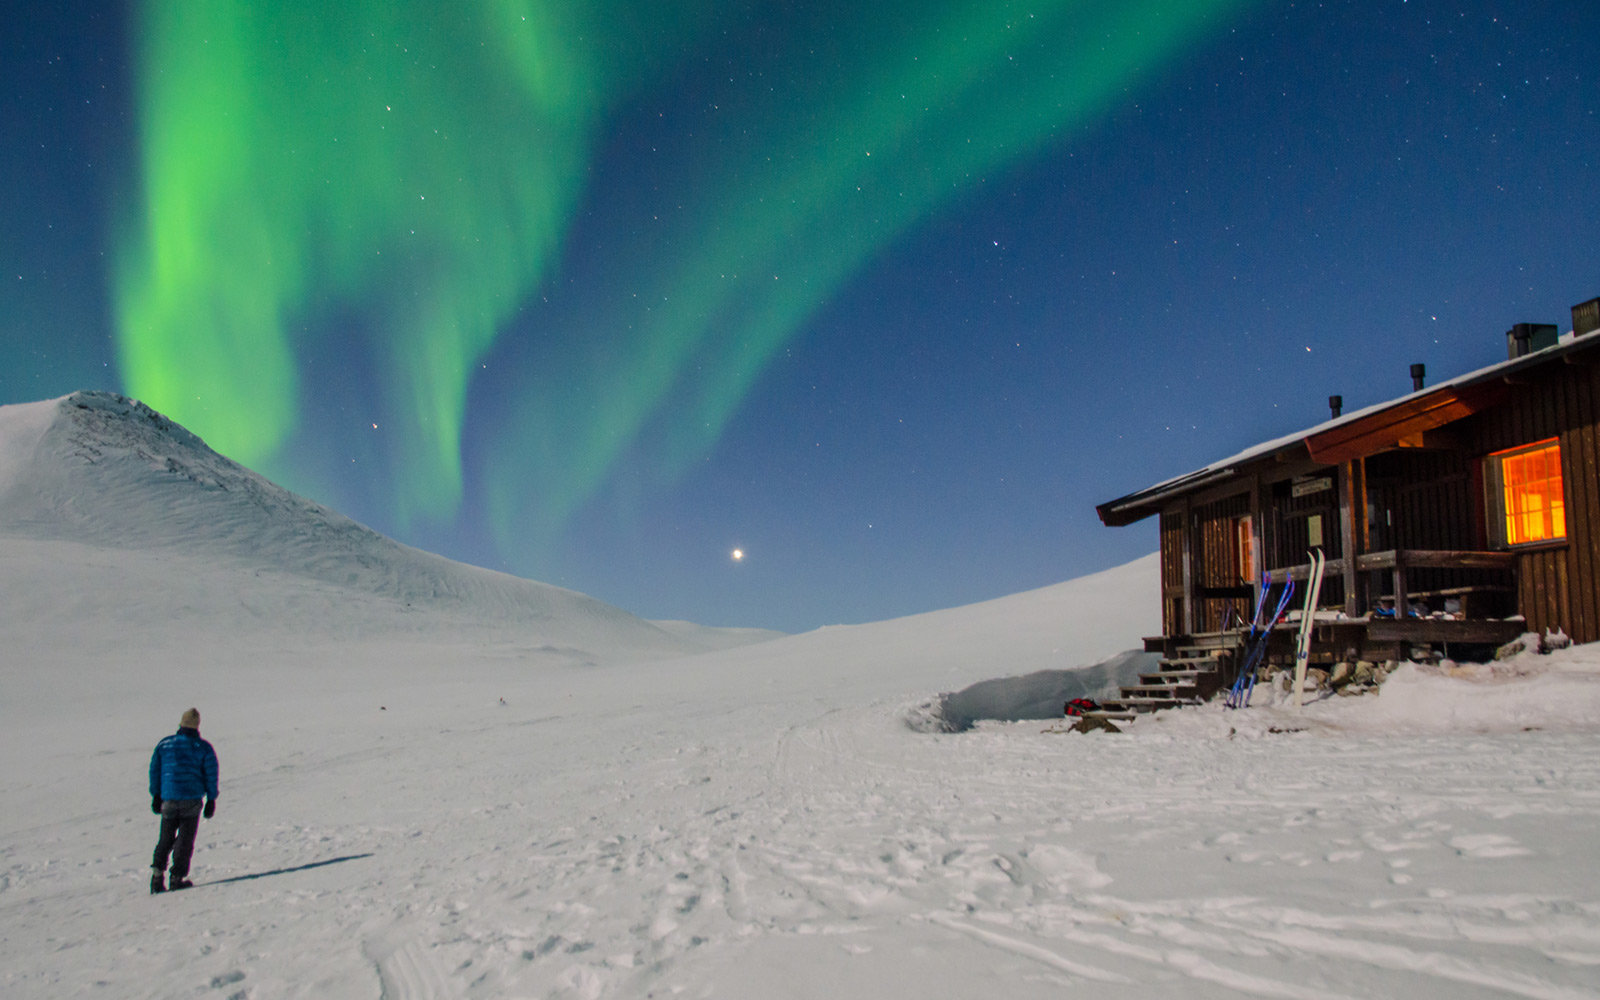 Wilderness Ski Expedition across Lapland, Finland, and Norway